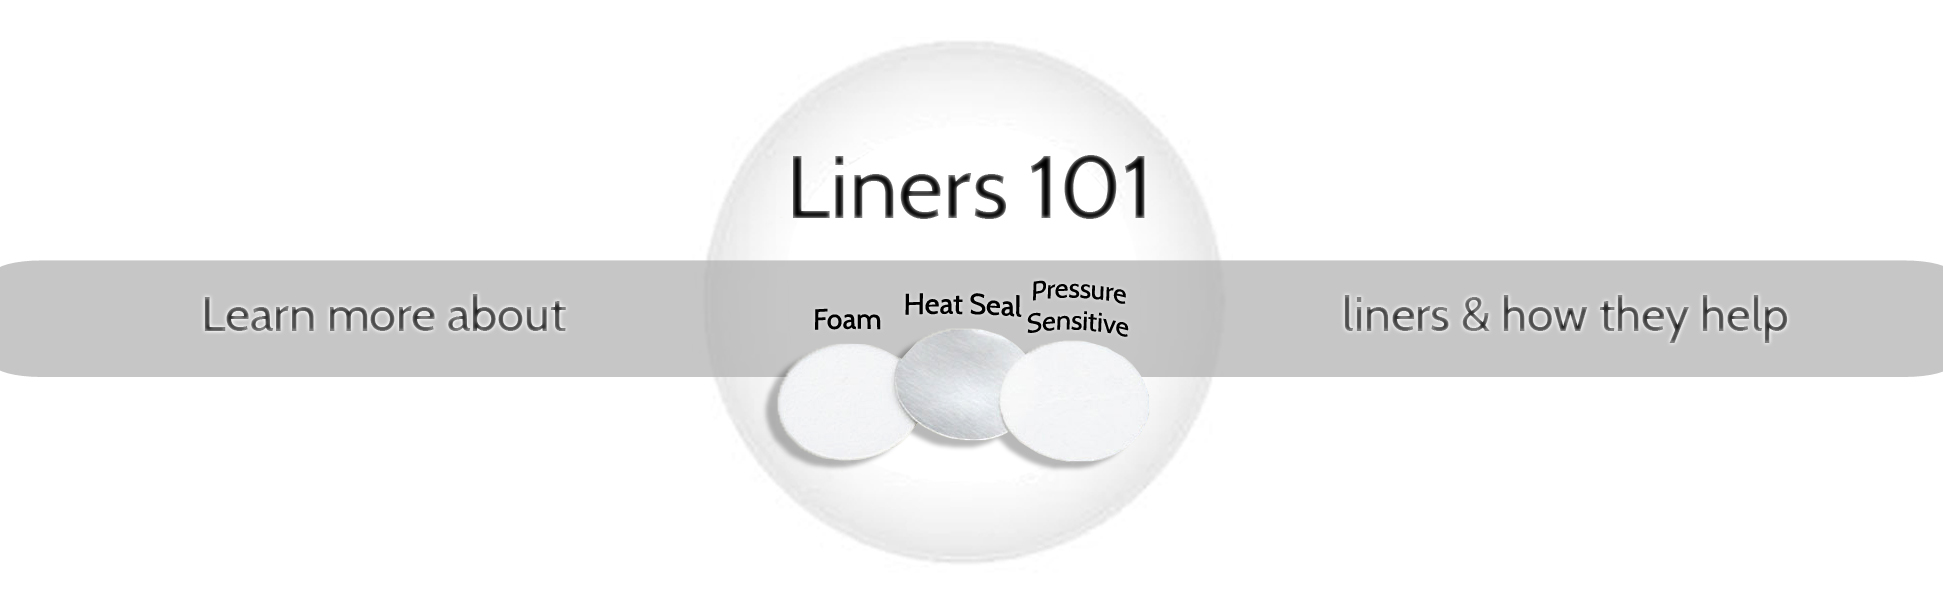 Product Banner for Liners 101 - Learn More About Liners